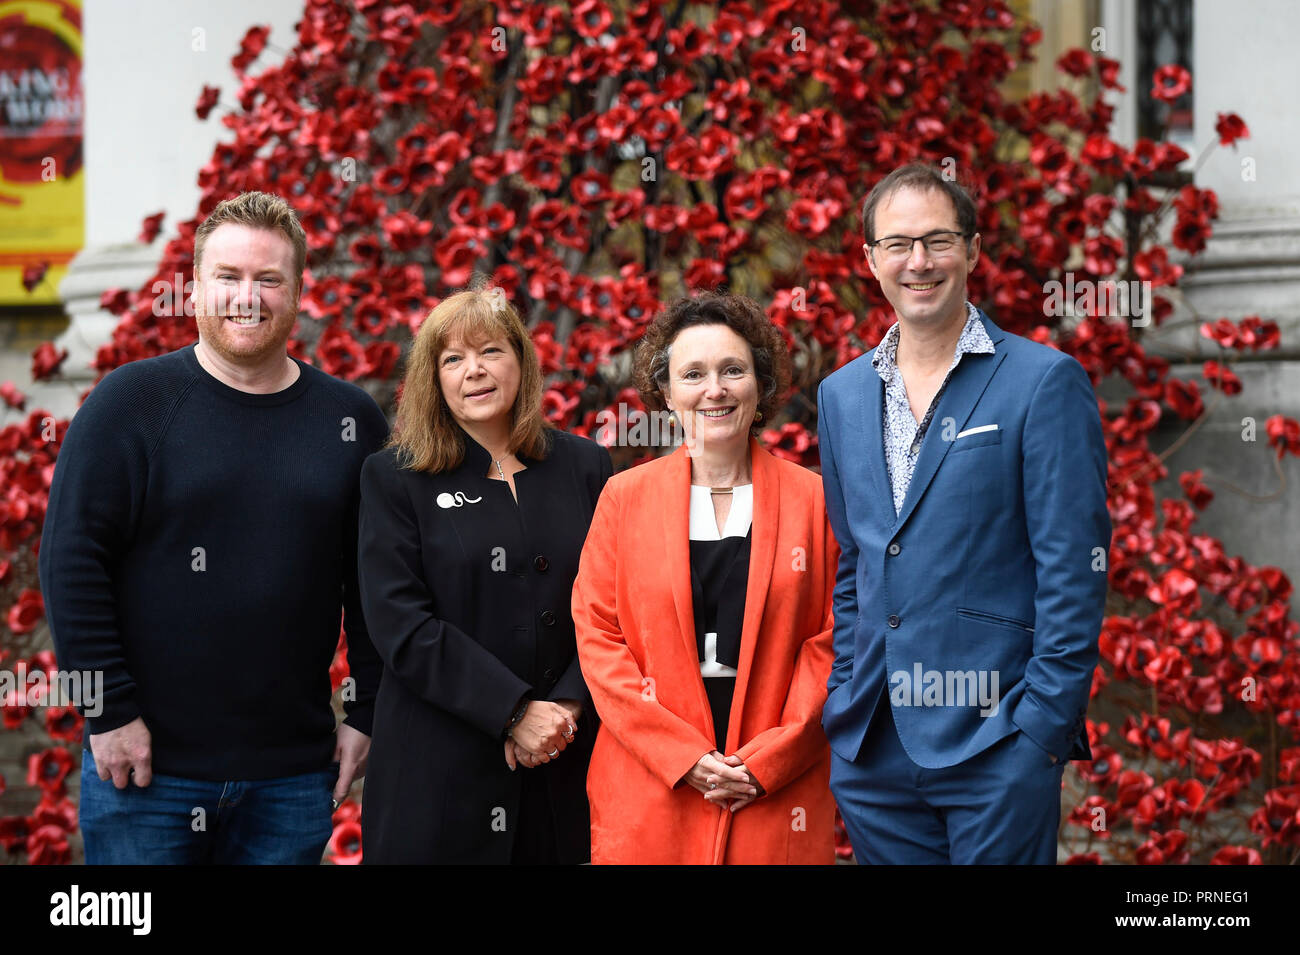 London, UK.  4 October 2018. (L to R) Artist Paul Cummins,  Diane Lees, Director General IWM, Jenny Waldman, artistic director of 14-18 NOW and designer Tom Piper stand next to  'Weeping Window', the iconic poppy sculpture which is unveiled at the Imperial War Museum.  The sculpture will be on site until 18 November 2018.  Credit: Stephen Chung / Alamy Live News - Stock Image